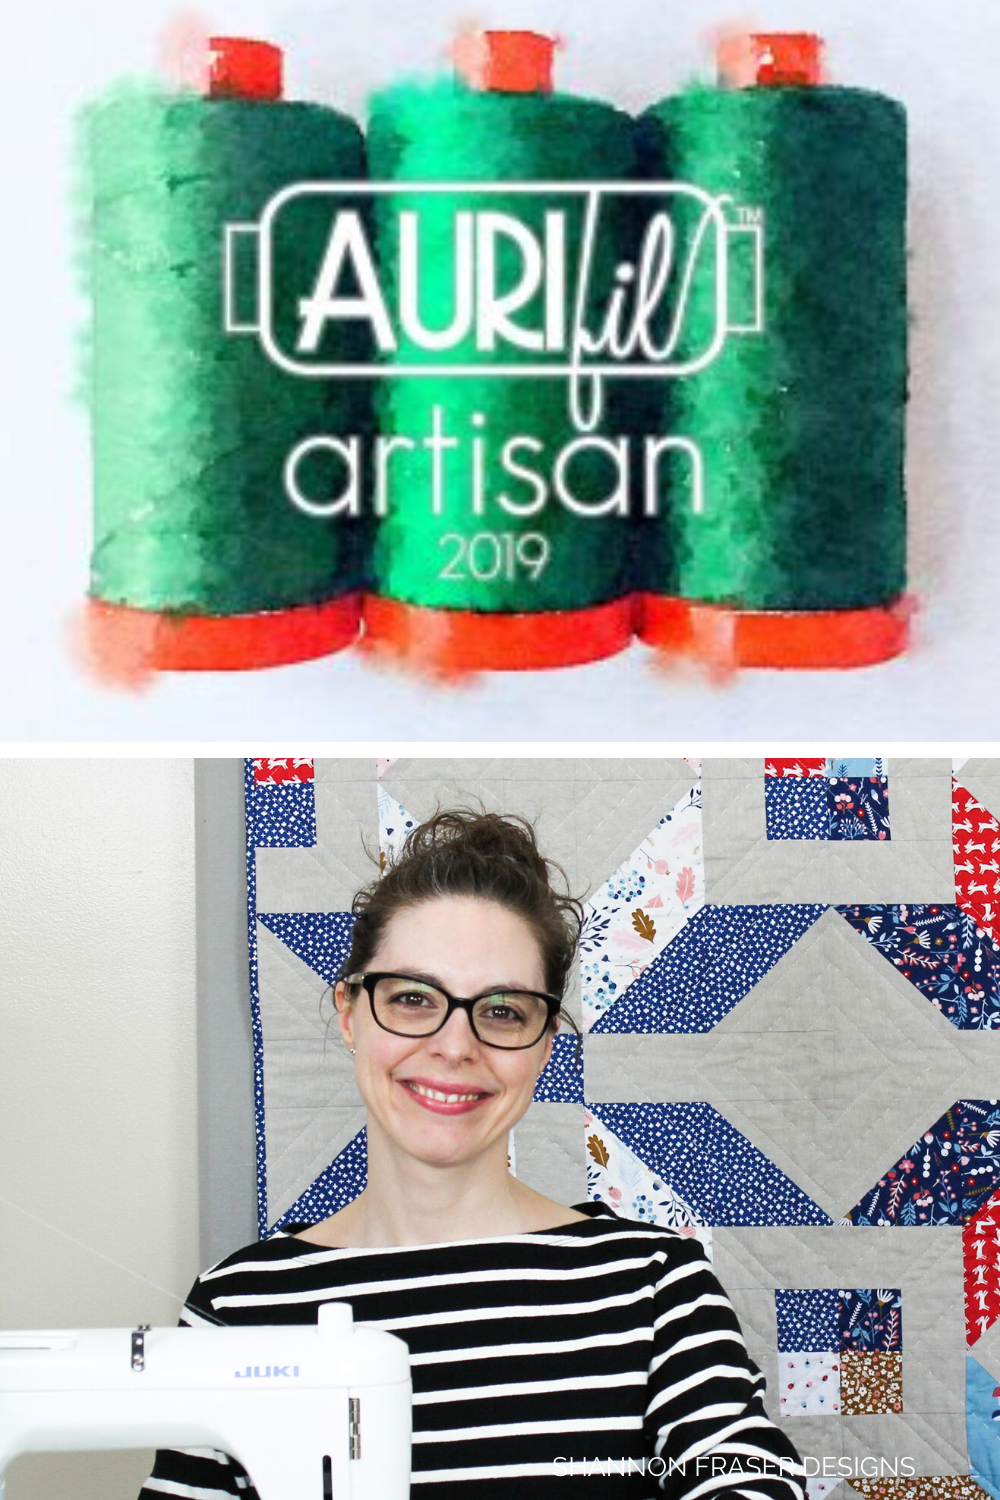 Aurifil Artisan 2019 Graphic + Shannon Fraser sitting at her sewing machine with a Winter Star quilt behind her | Why I love Aurifil Thread | Shannon Fraser Designs